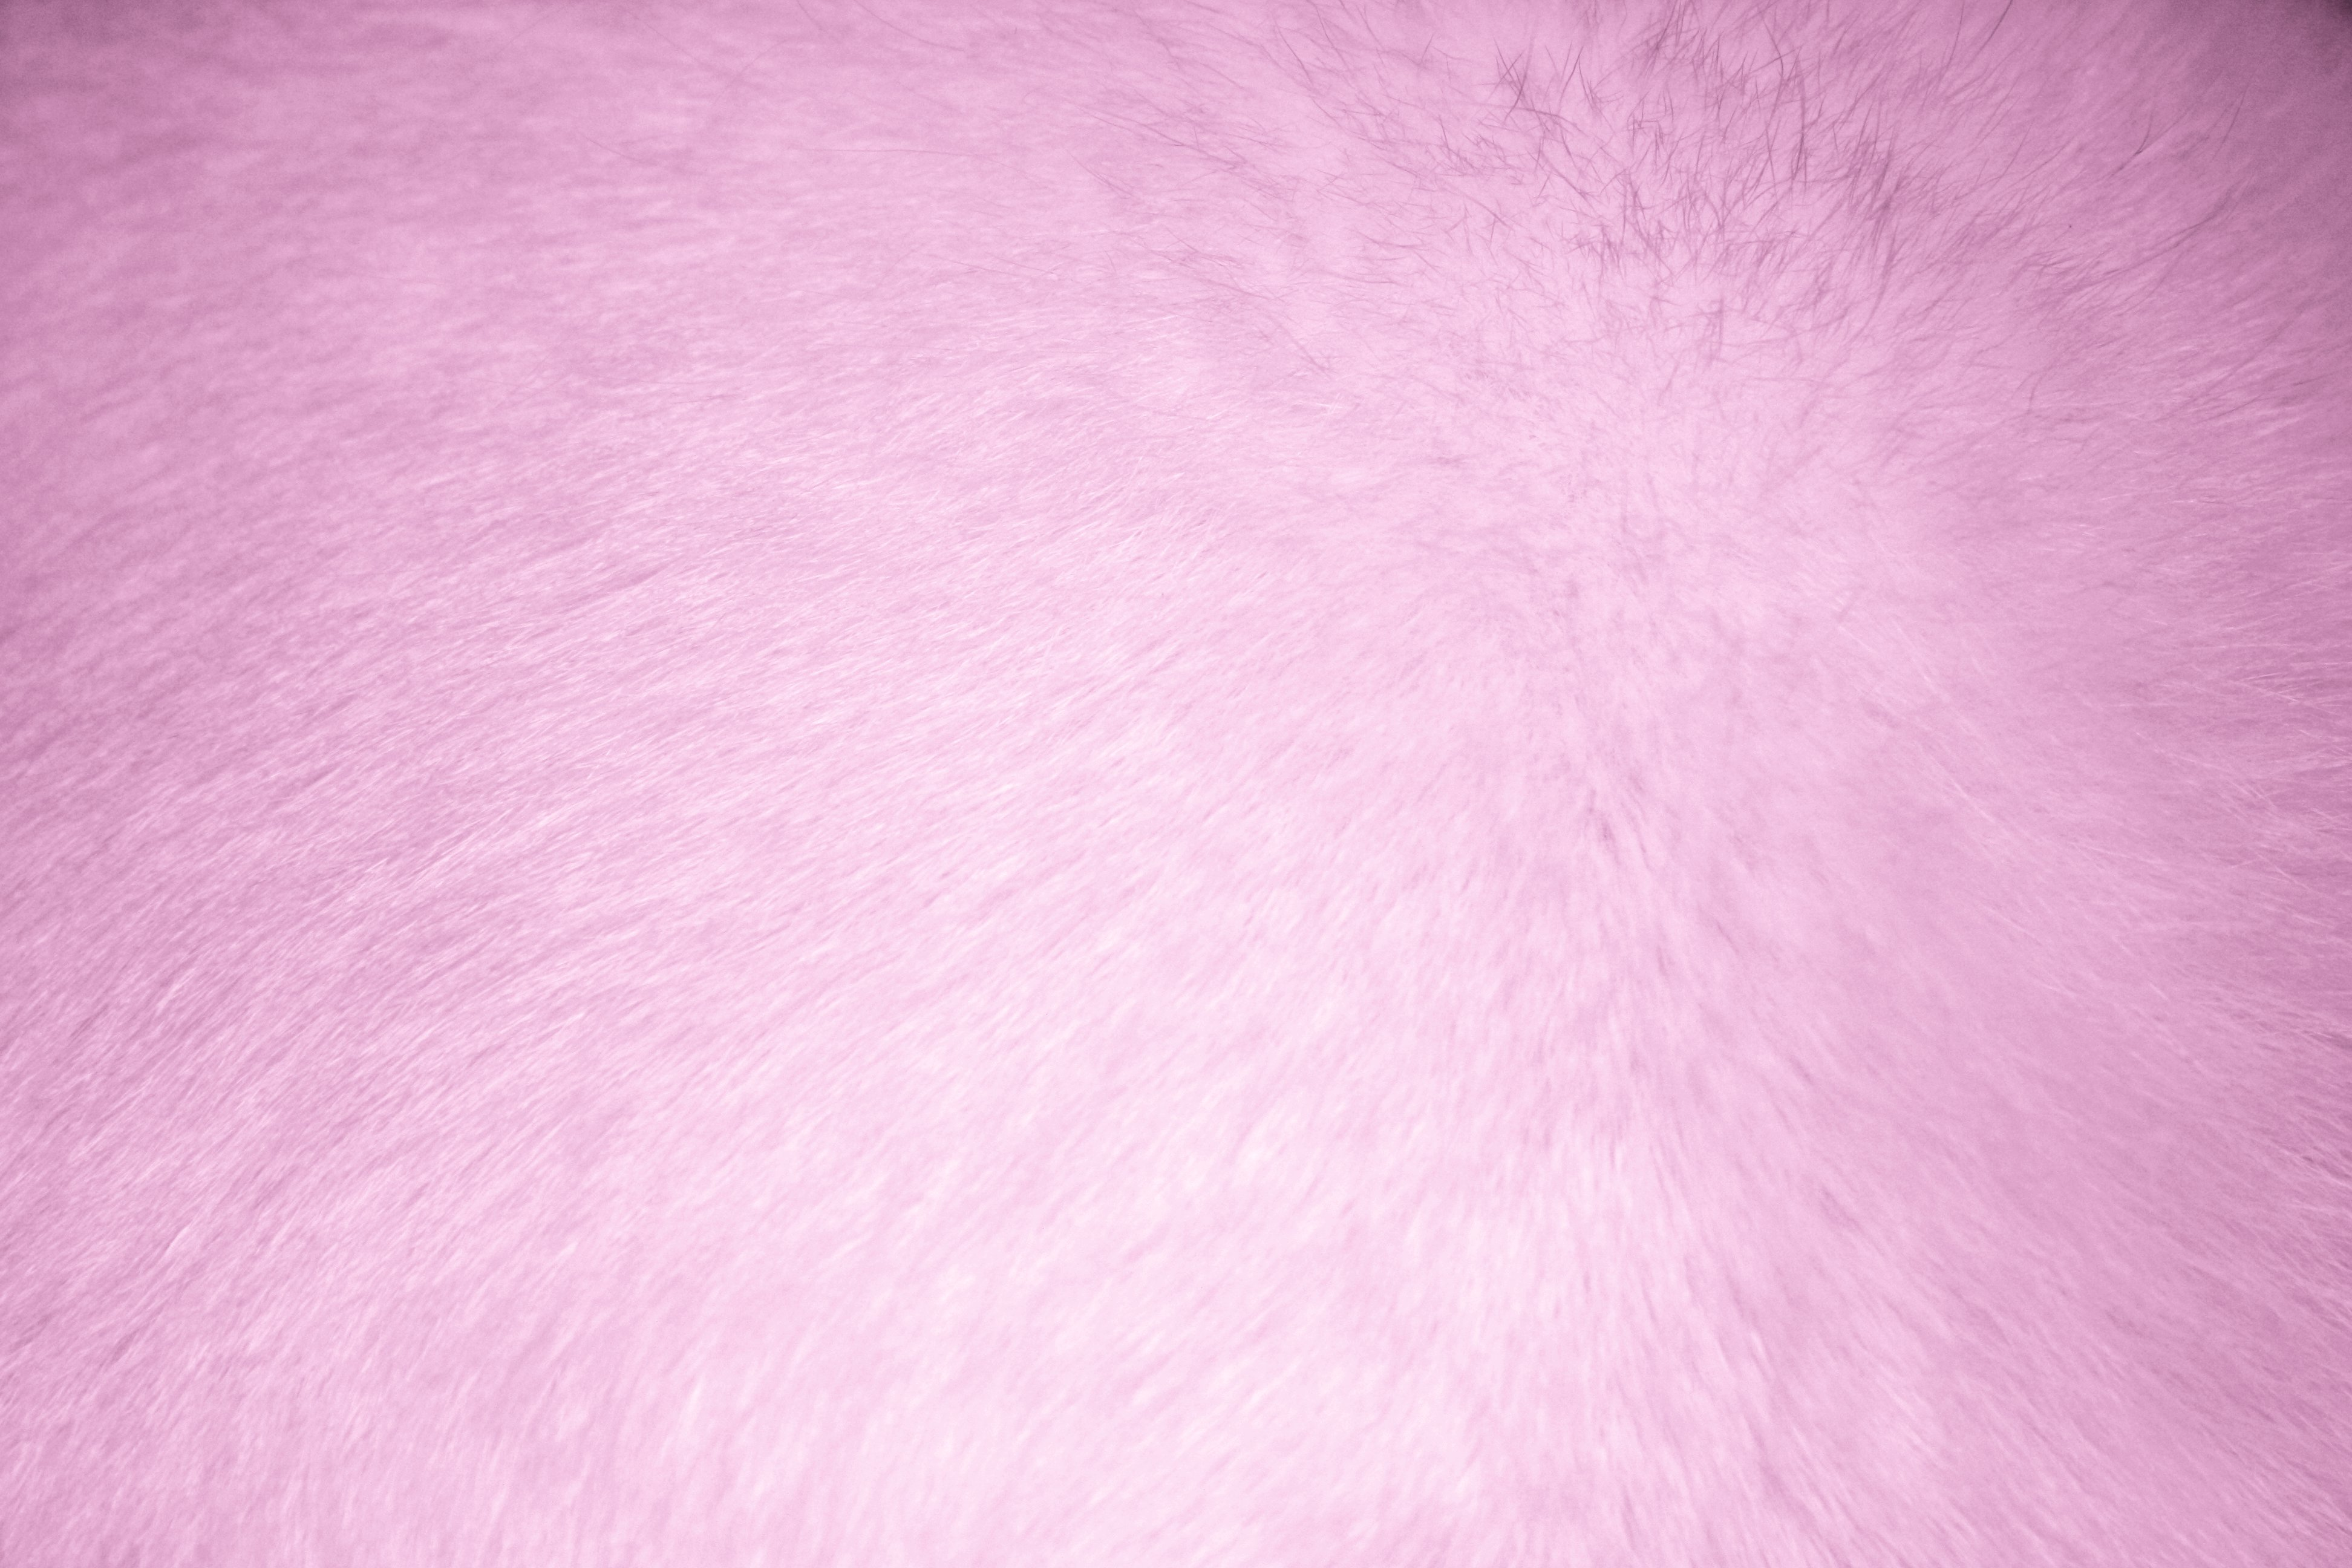 Pink fabric texture free high resolution photo dimensions 3888 - Pink Fur Texture